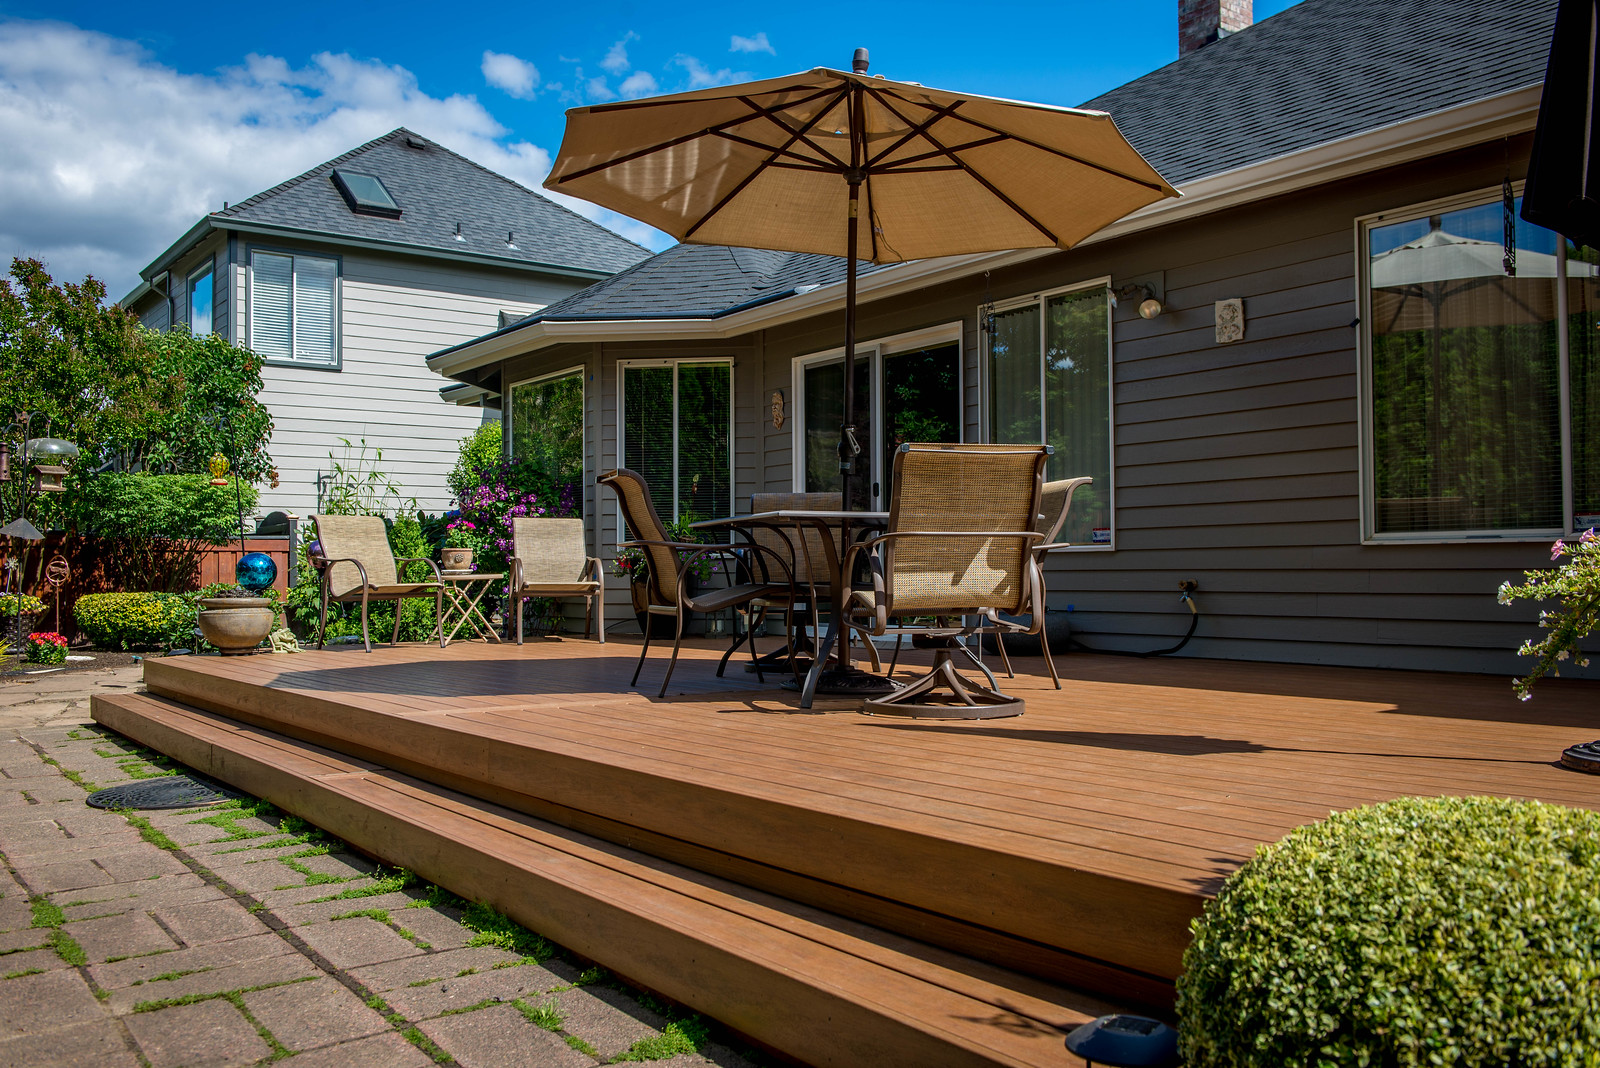 1206 - LifeStyle HDPE Composite Decking